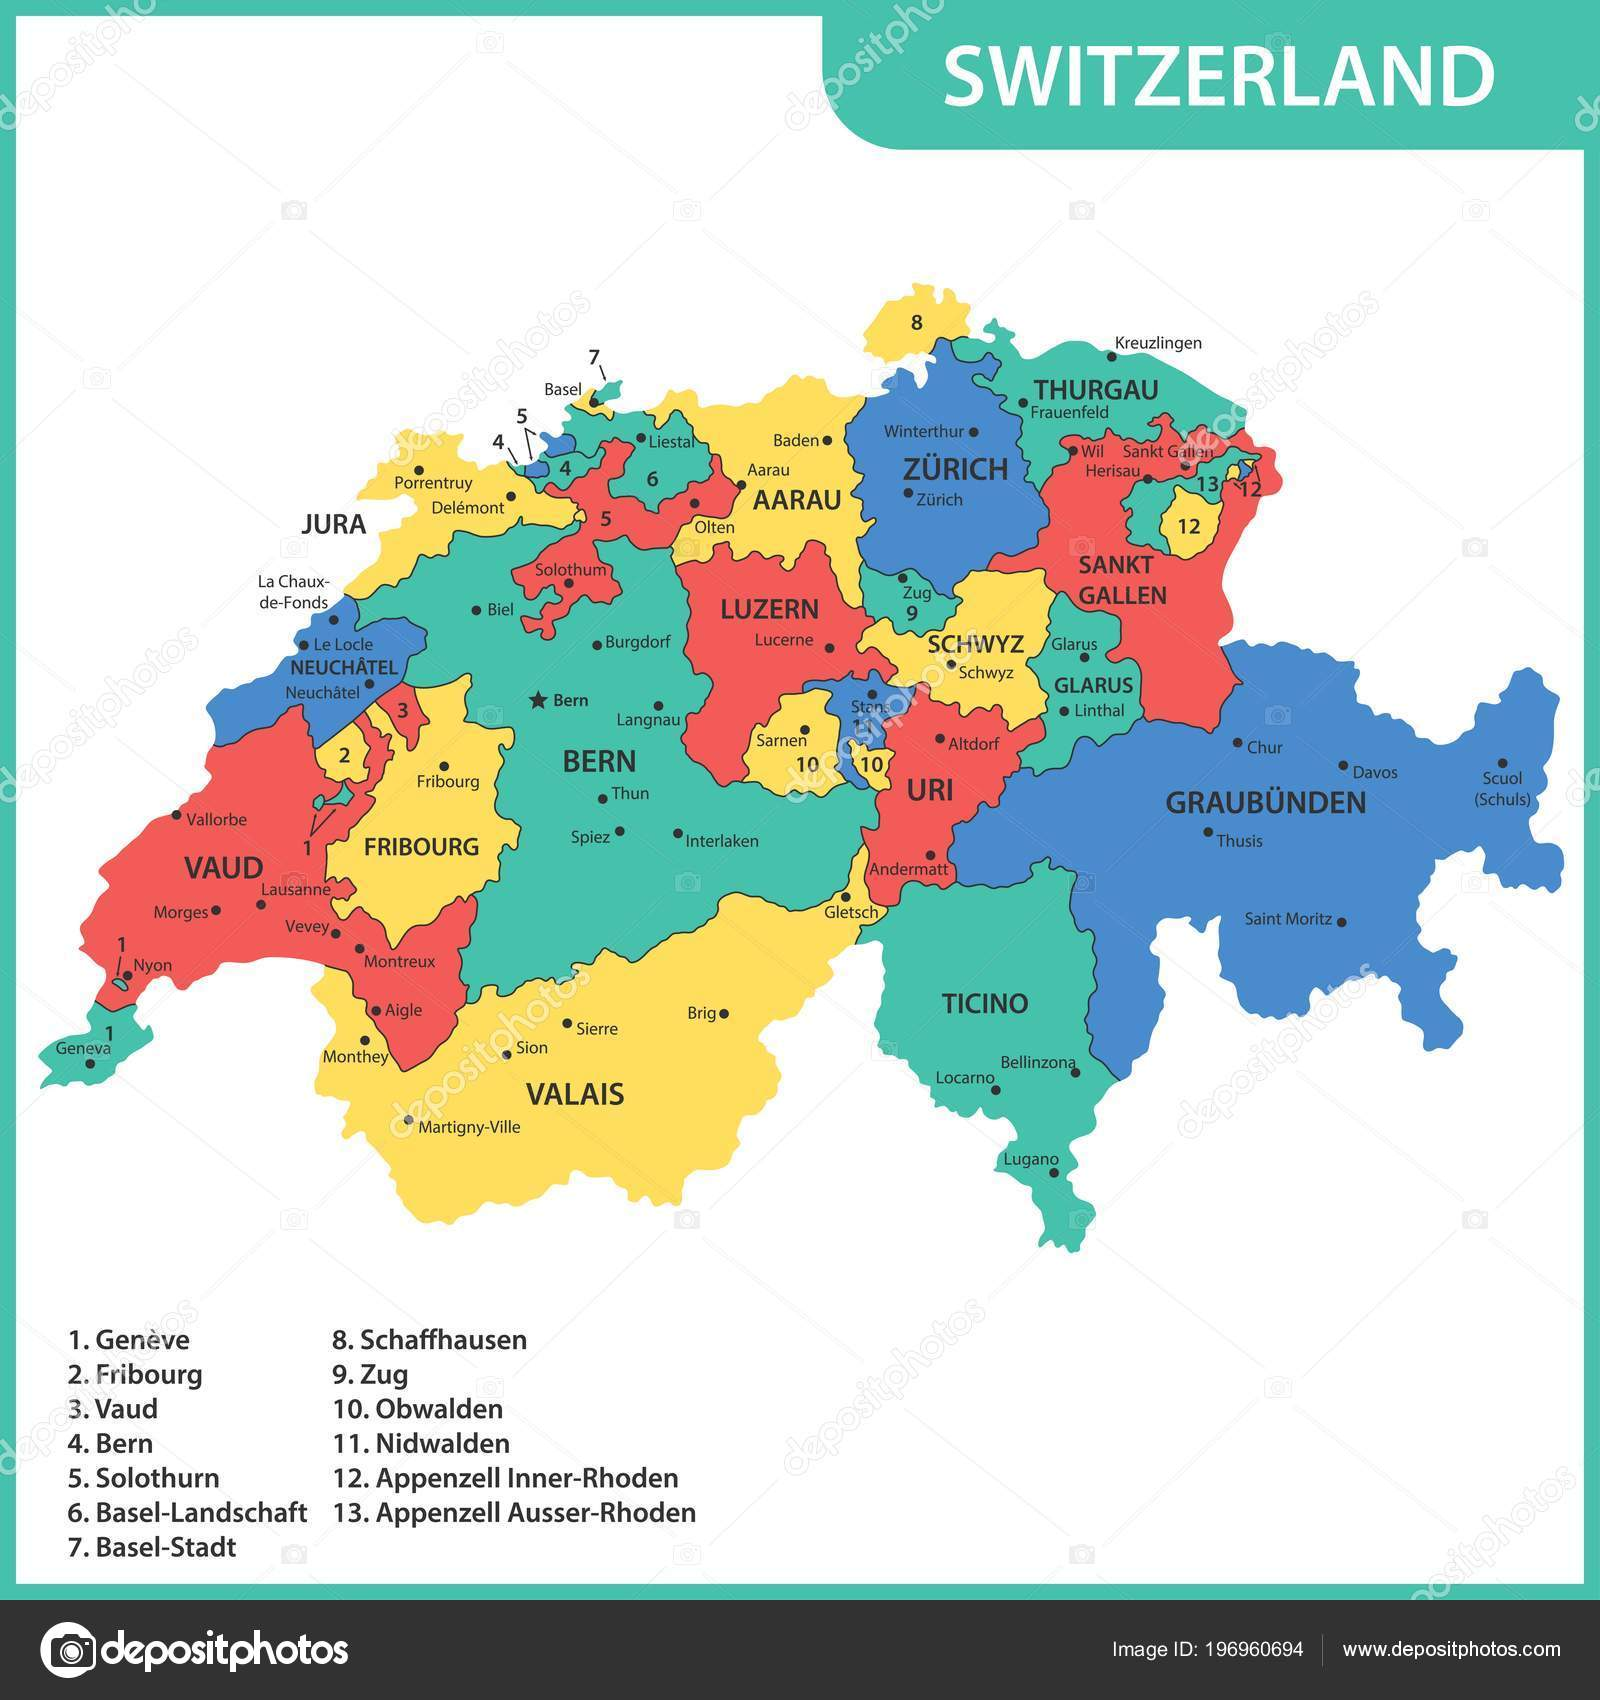 Detailed Map Switzerland Regions States Cities Capitals ... on map spain cities, map tx cities, map with cities, map china cities, map europe, map france cities, map equatorial guinea cities, switzerland largest cities, map italy cities, map georgia cities, map of the usa cities, map germany cities, switzerland alps cities, map az cities, map japan cities, map jordan cities, switzerland capital and major cities, map india cities, map ireland cities, map england cities,